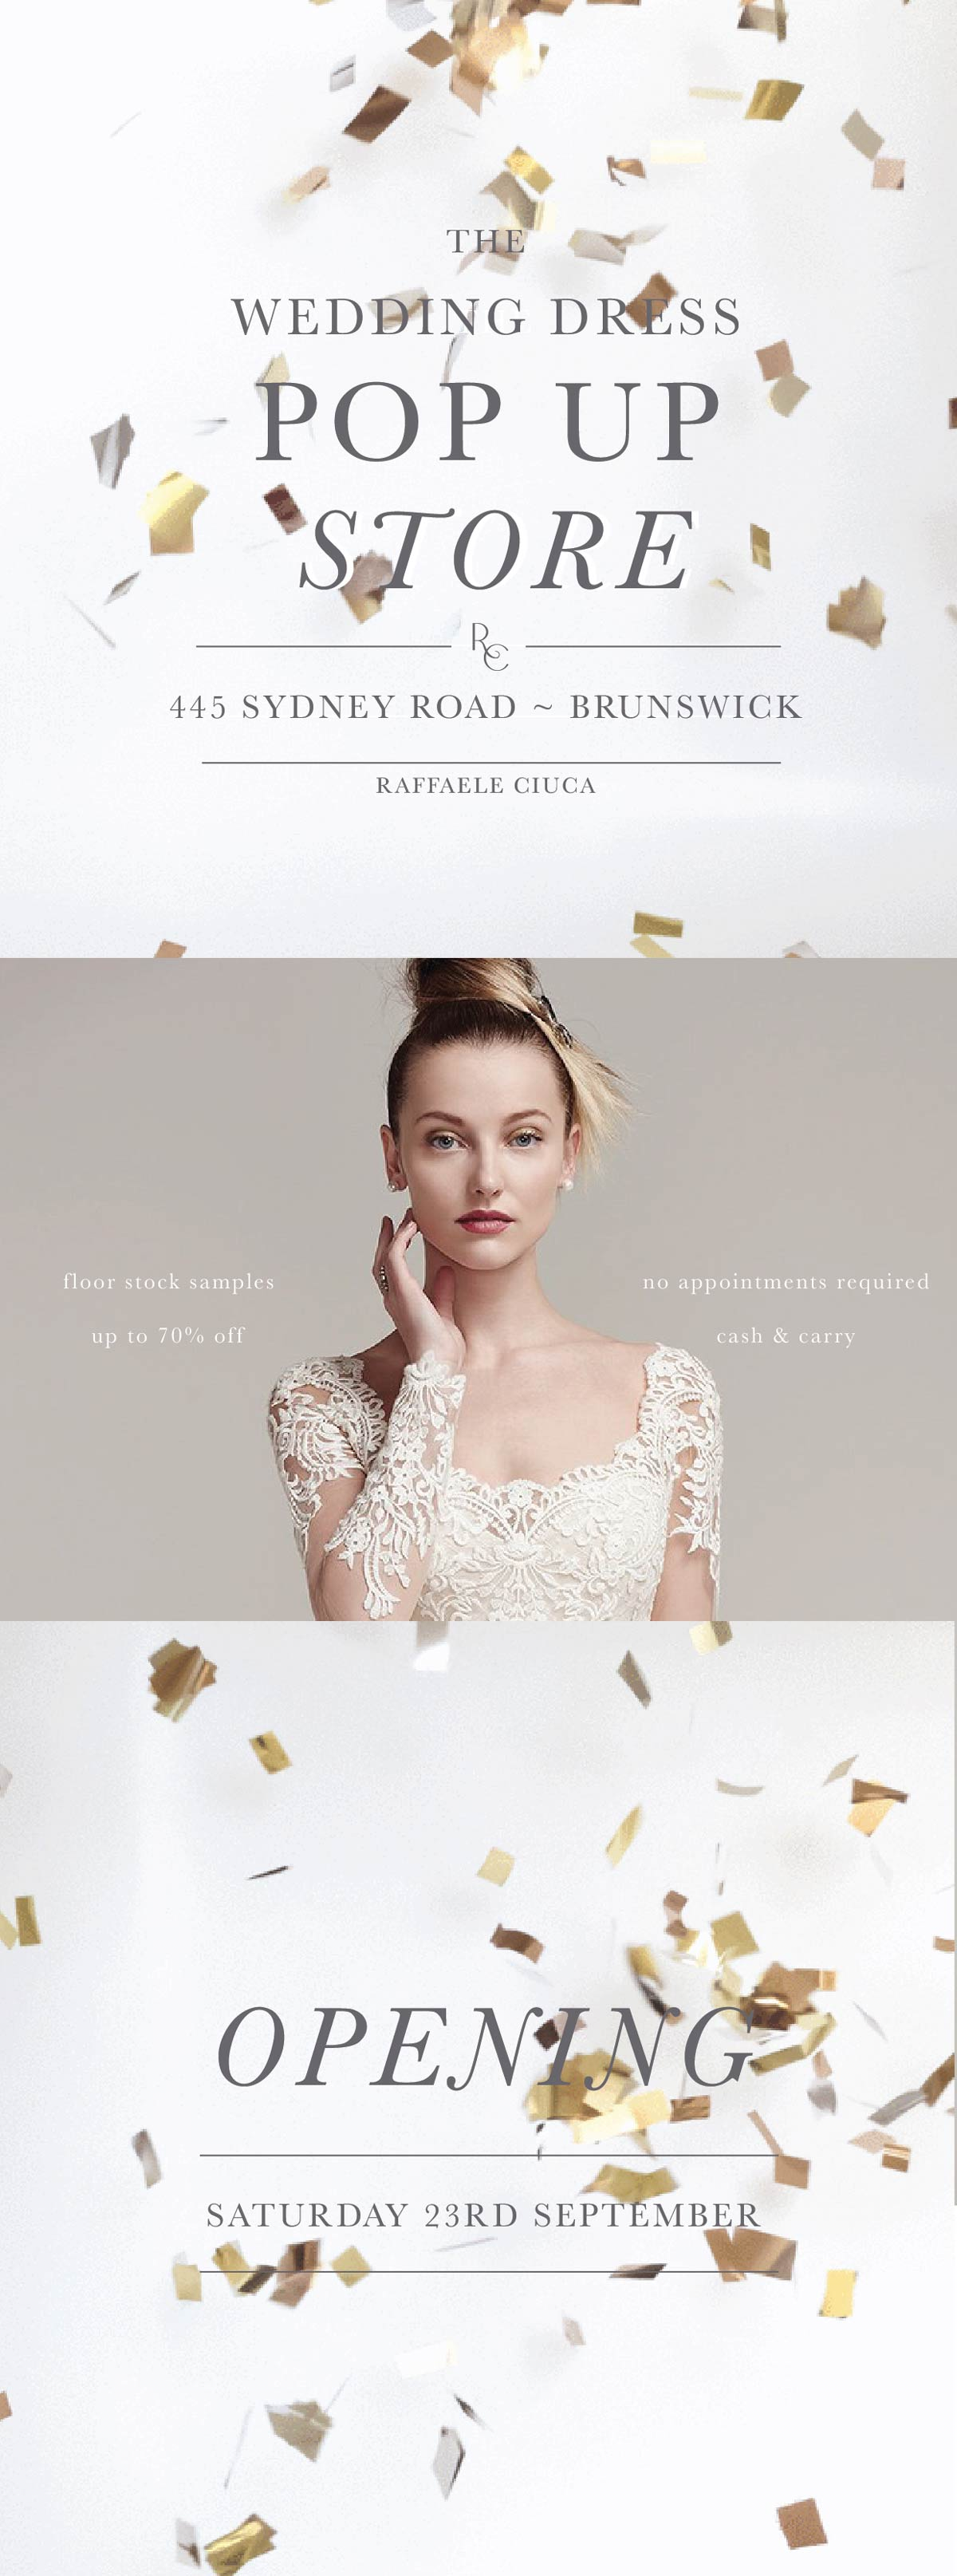 Raffaele Ciuca wedding dress pop up store - discounted, affordable bridal gowns melbourne